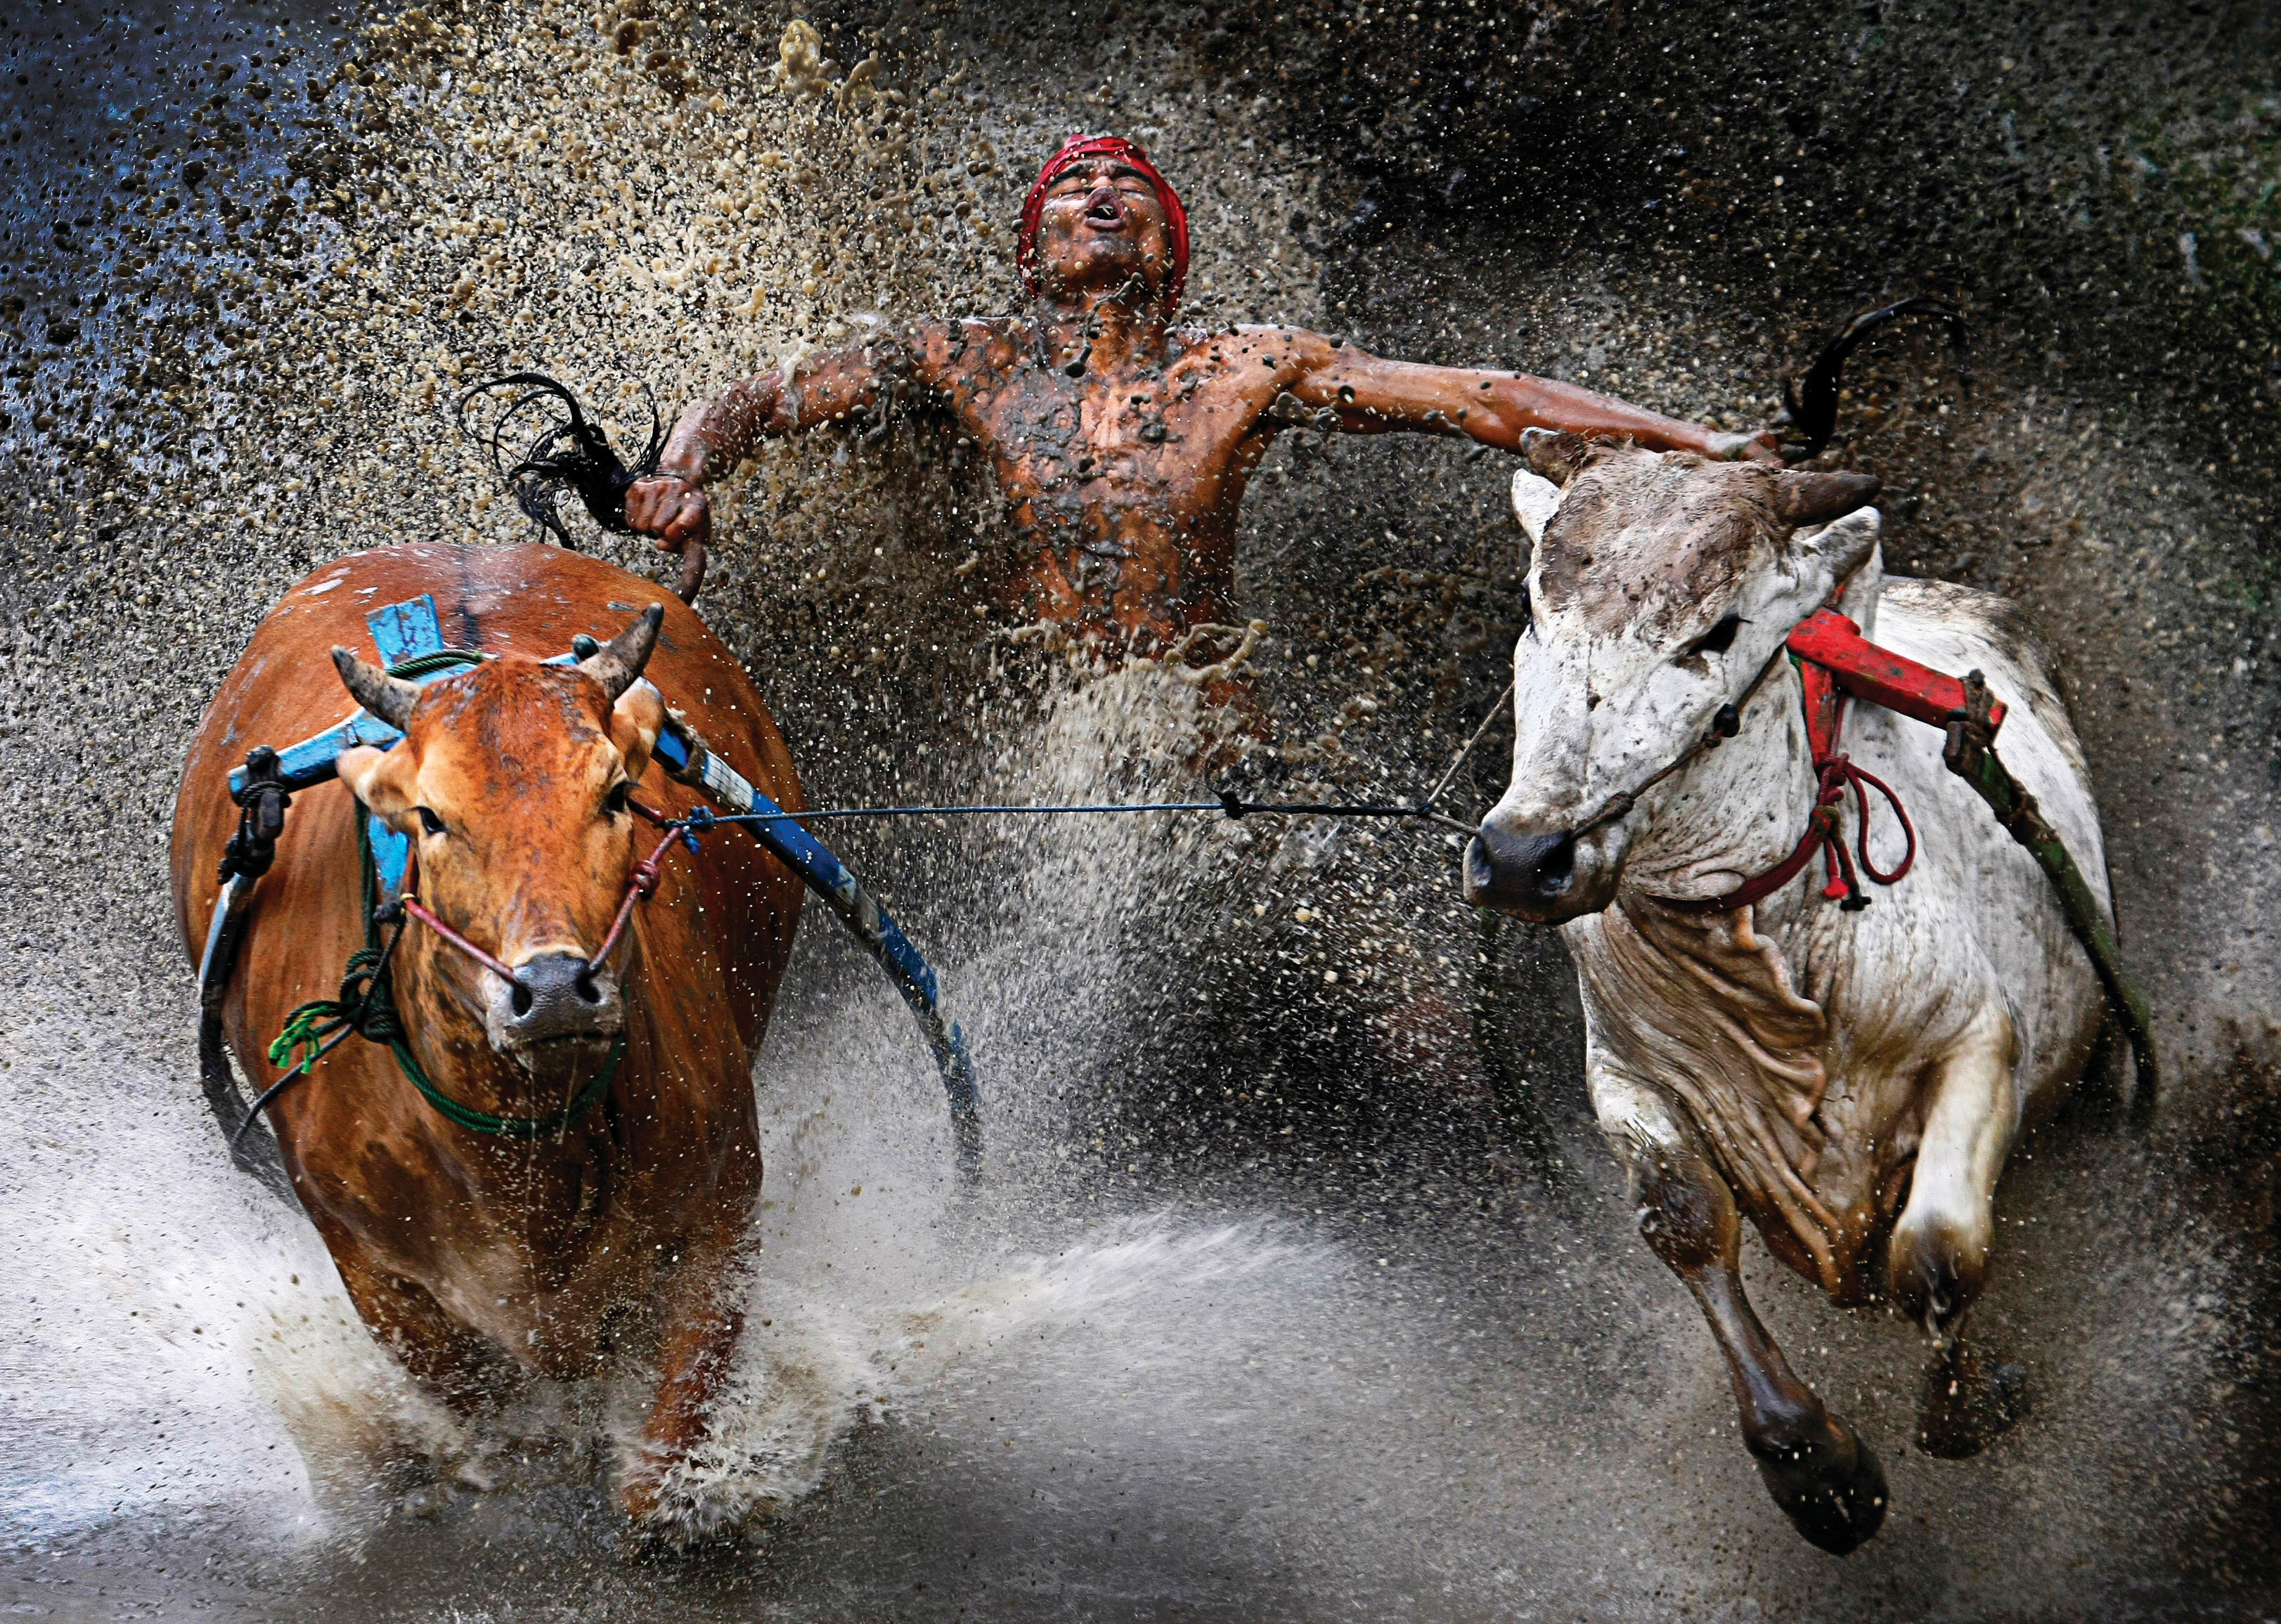 A competitor and his charges reach the finish of a bull race, in Batu Sangkar, West Sumatra.